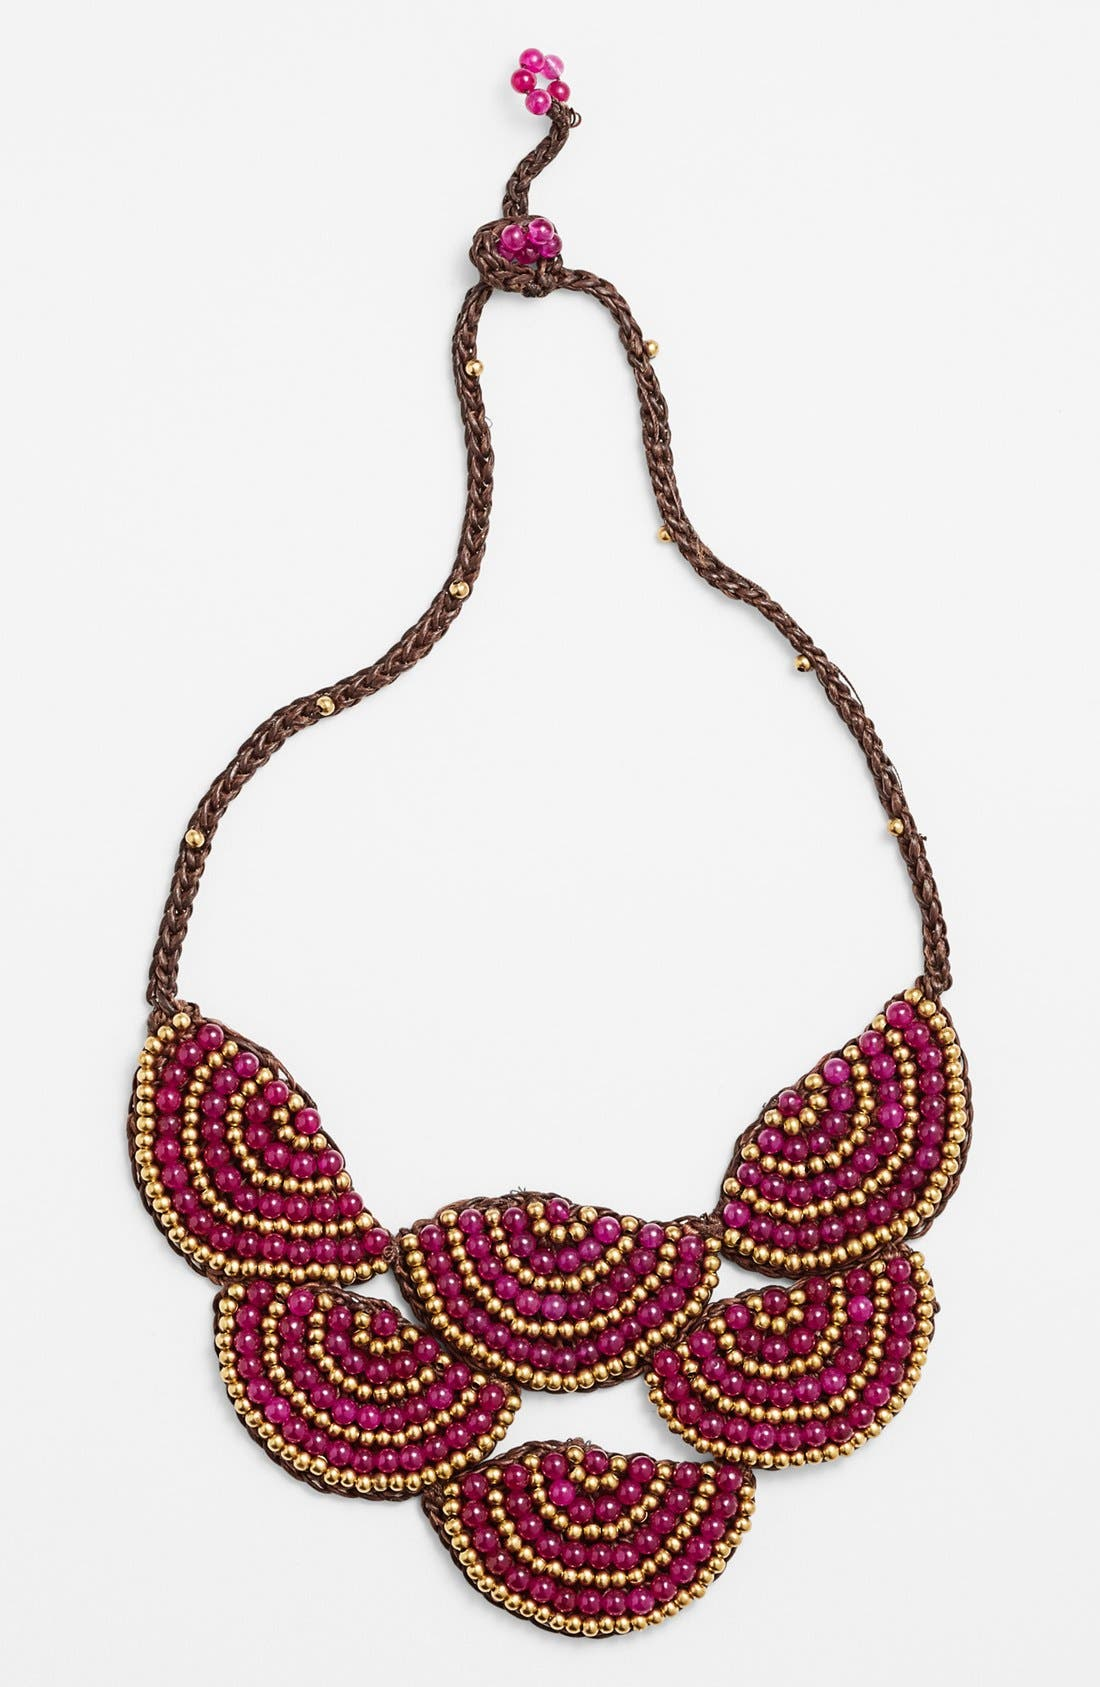 Alternate Image 1 Selected - Panacea Beaded Rope Bib Necklace